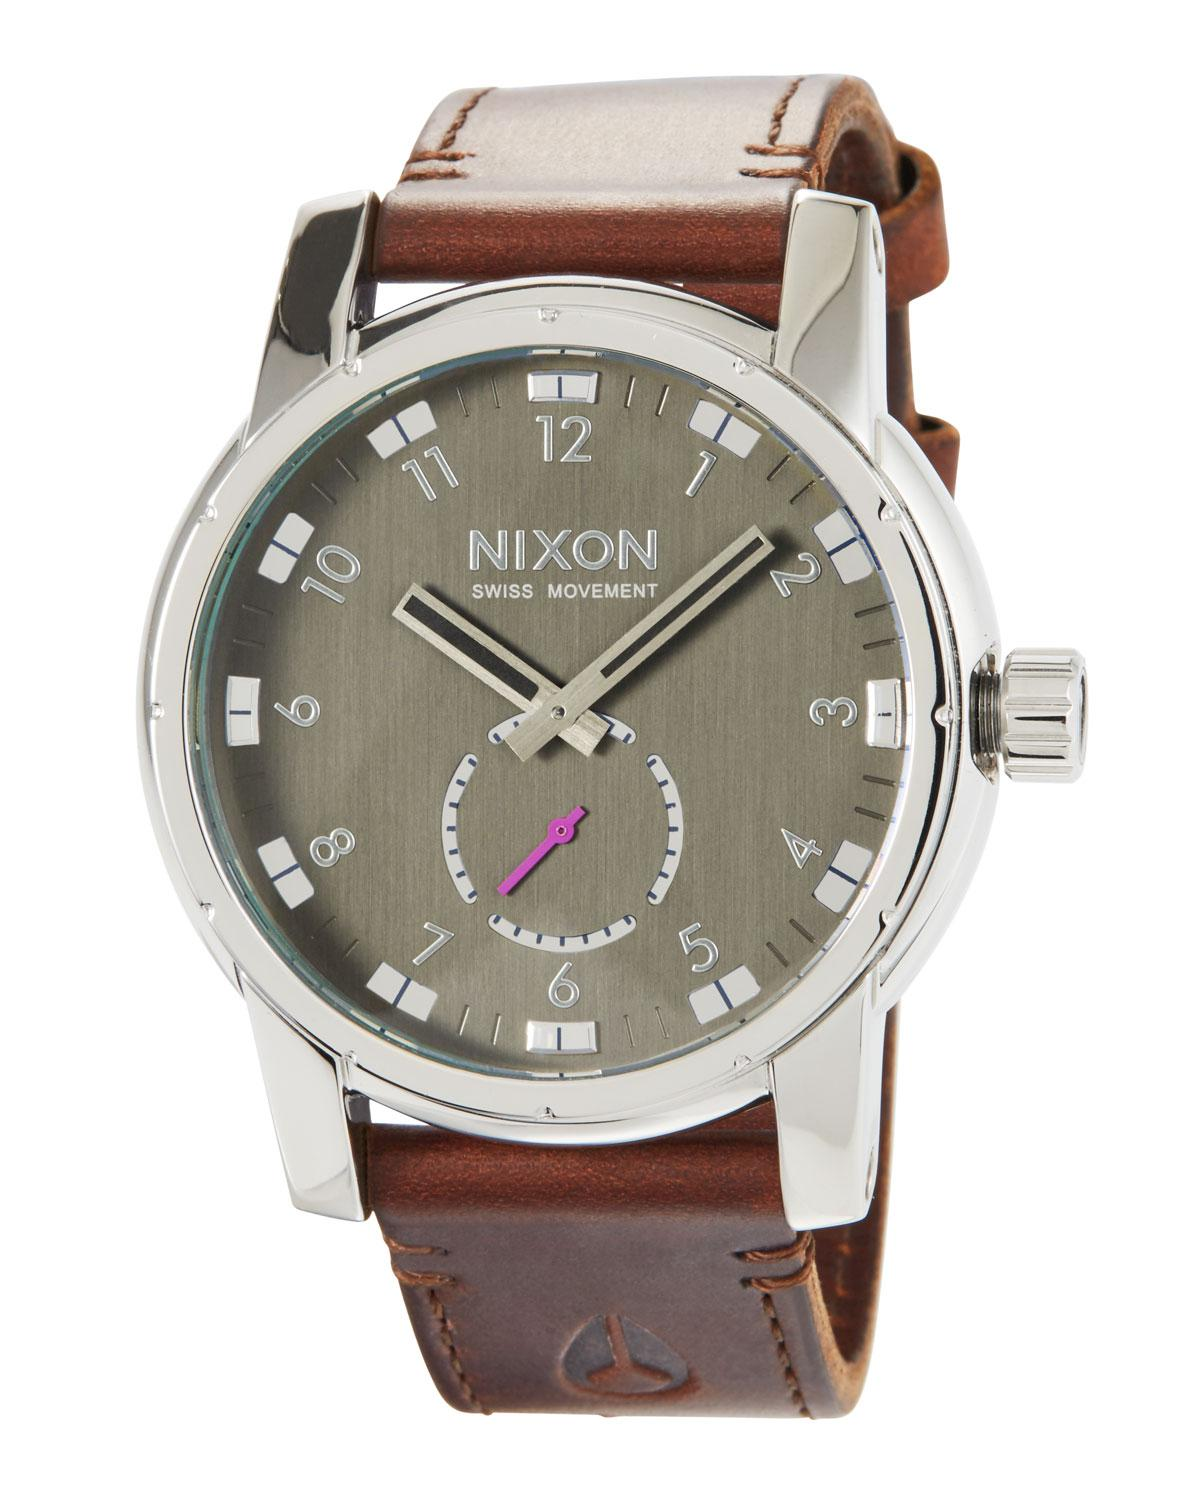 8e1257e54e8 Nixon - Men s 45mm Patriot Leather Watch Brown for Men - Lyst. View  fullscreen